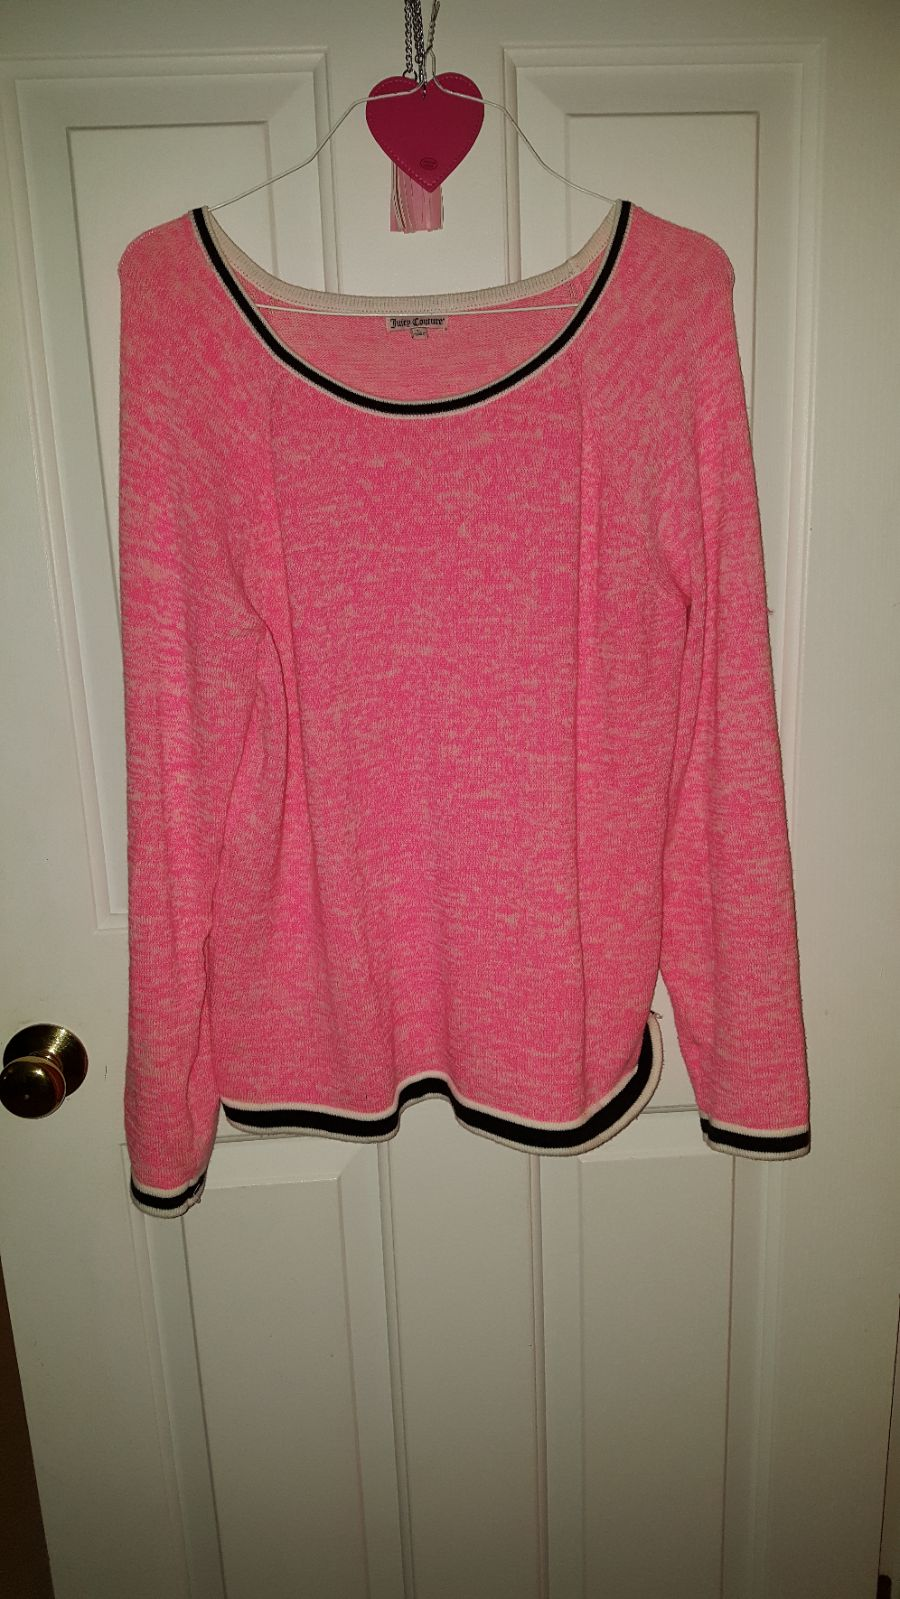 Hot pink sweater Sz L - Mercari: BUY & SELL THINGS YOU LOVE